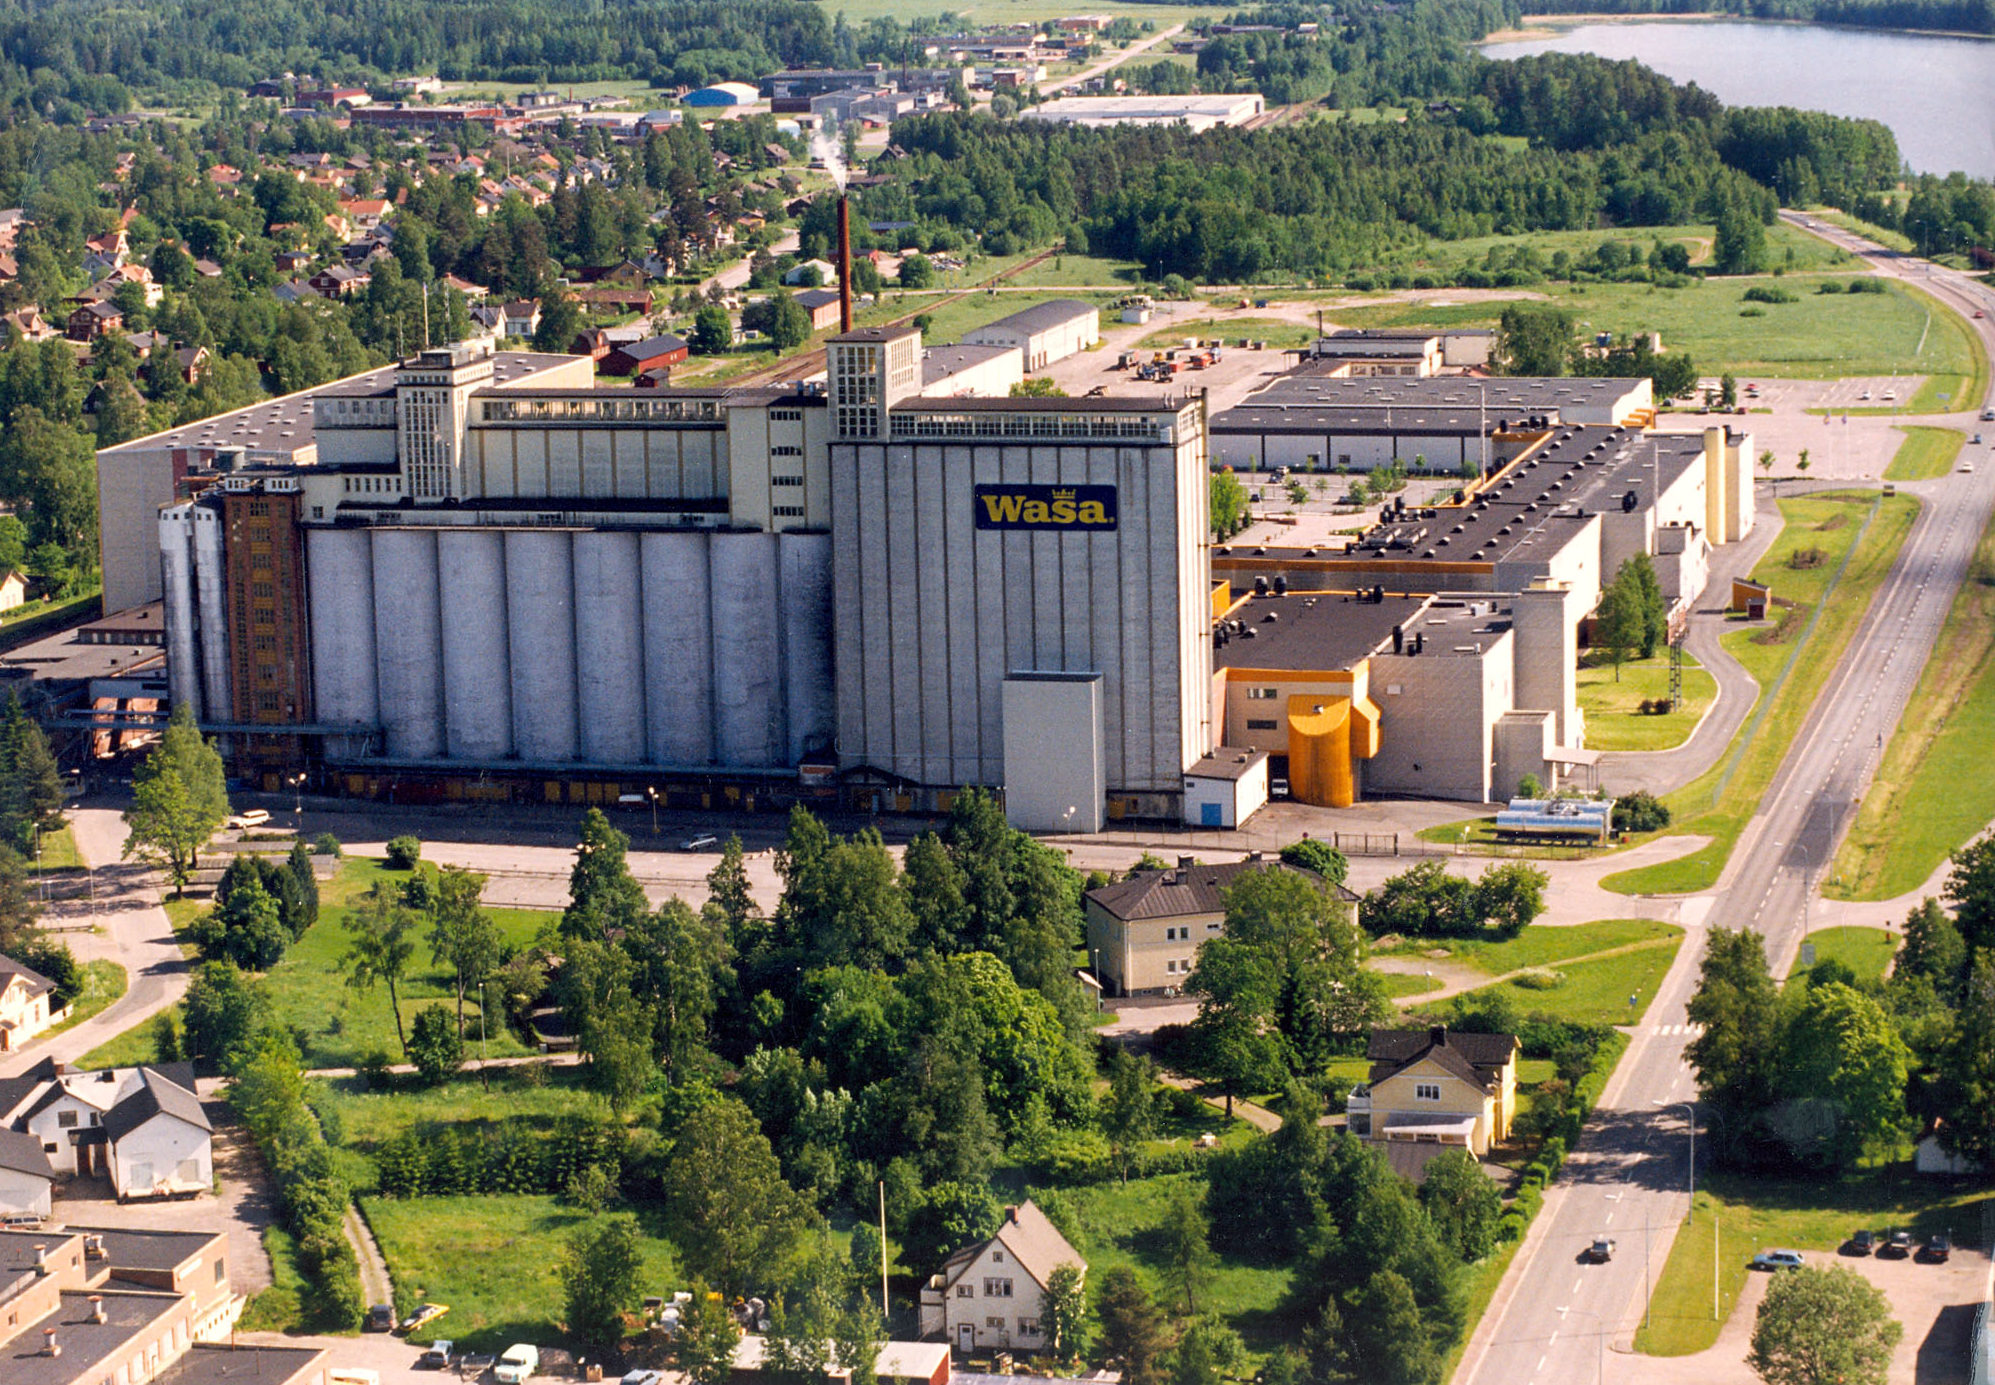 1999 - WASA plant in Sweden